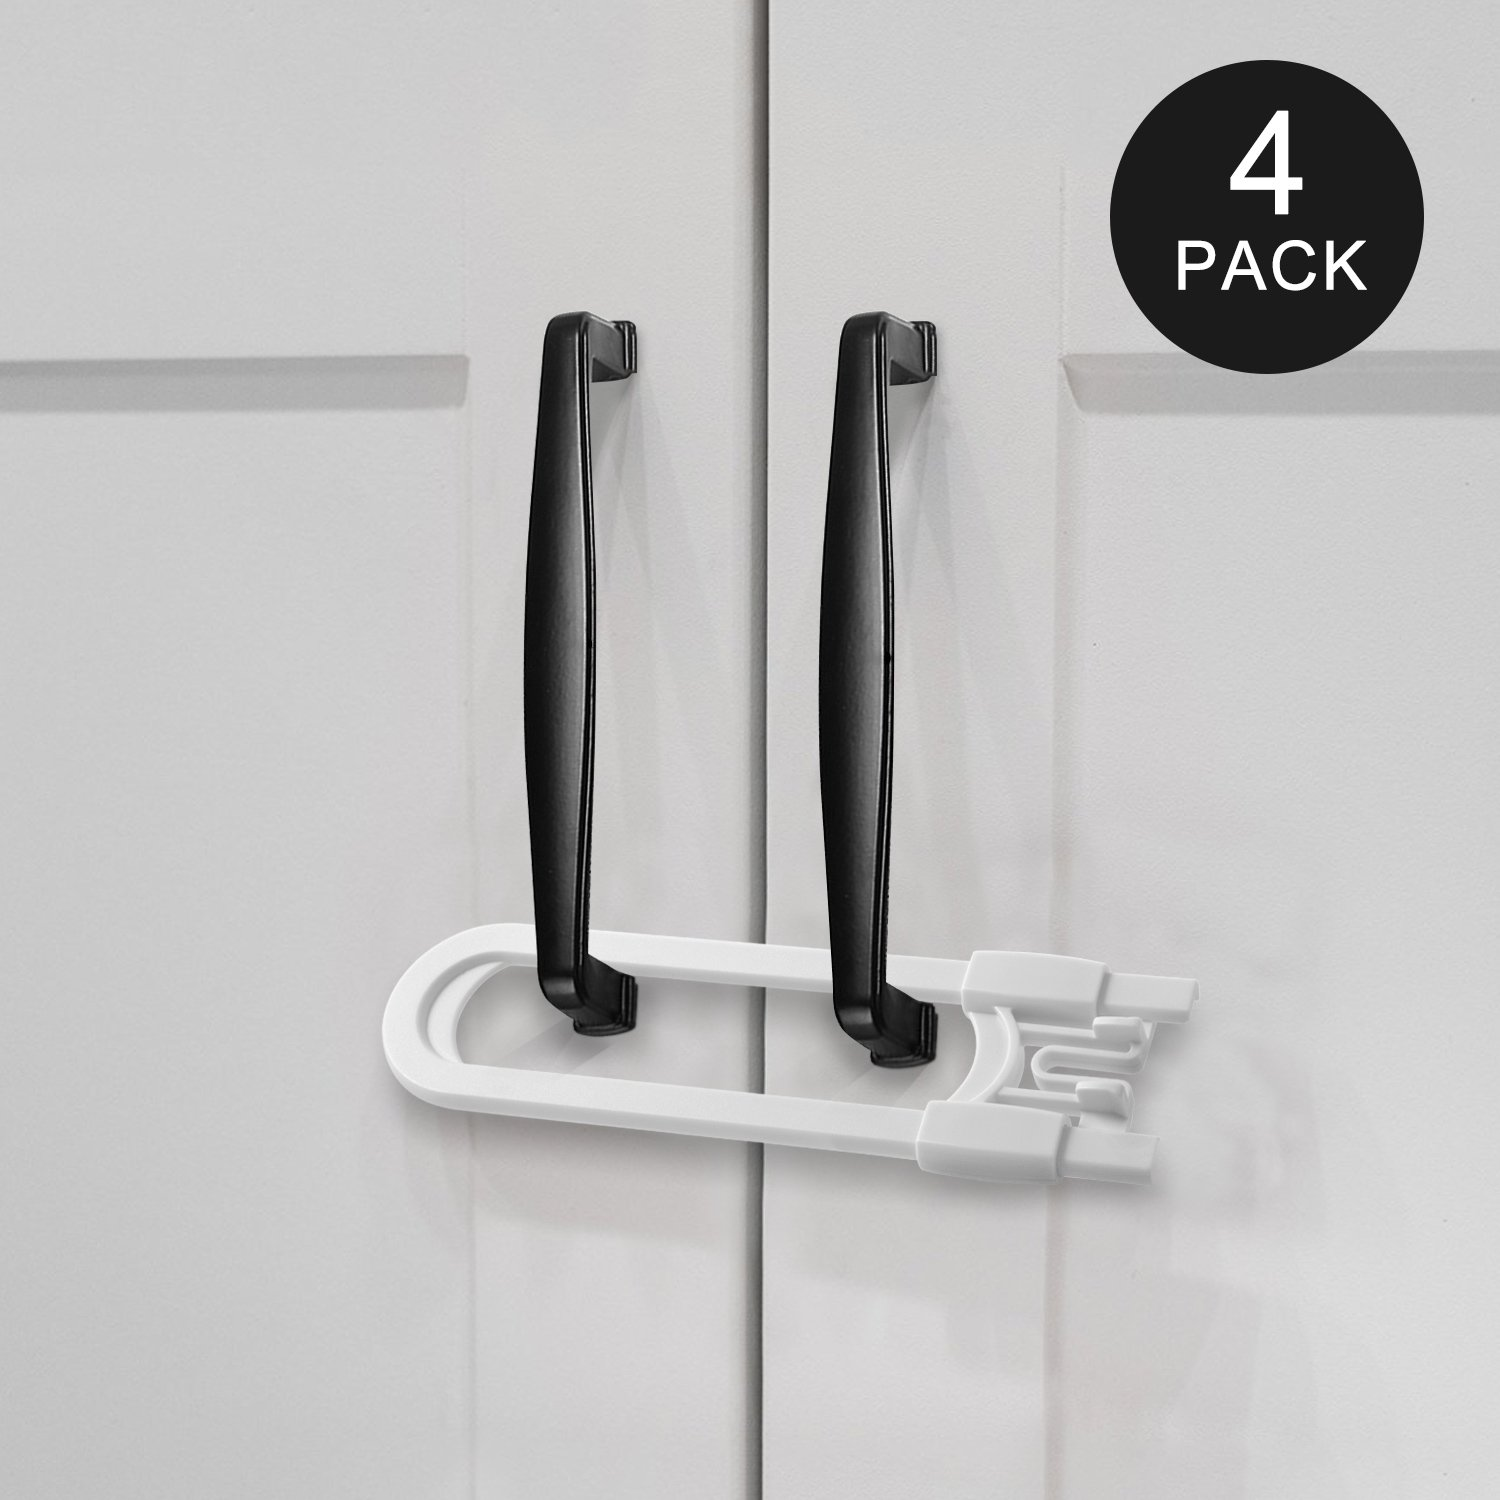 Amazon.com : Baby Proofing Corner Guards - 4 Pack - Clear - Ultimate ...